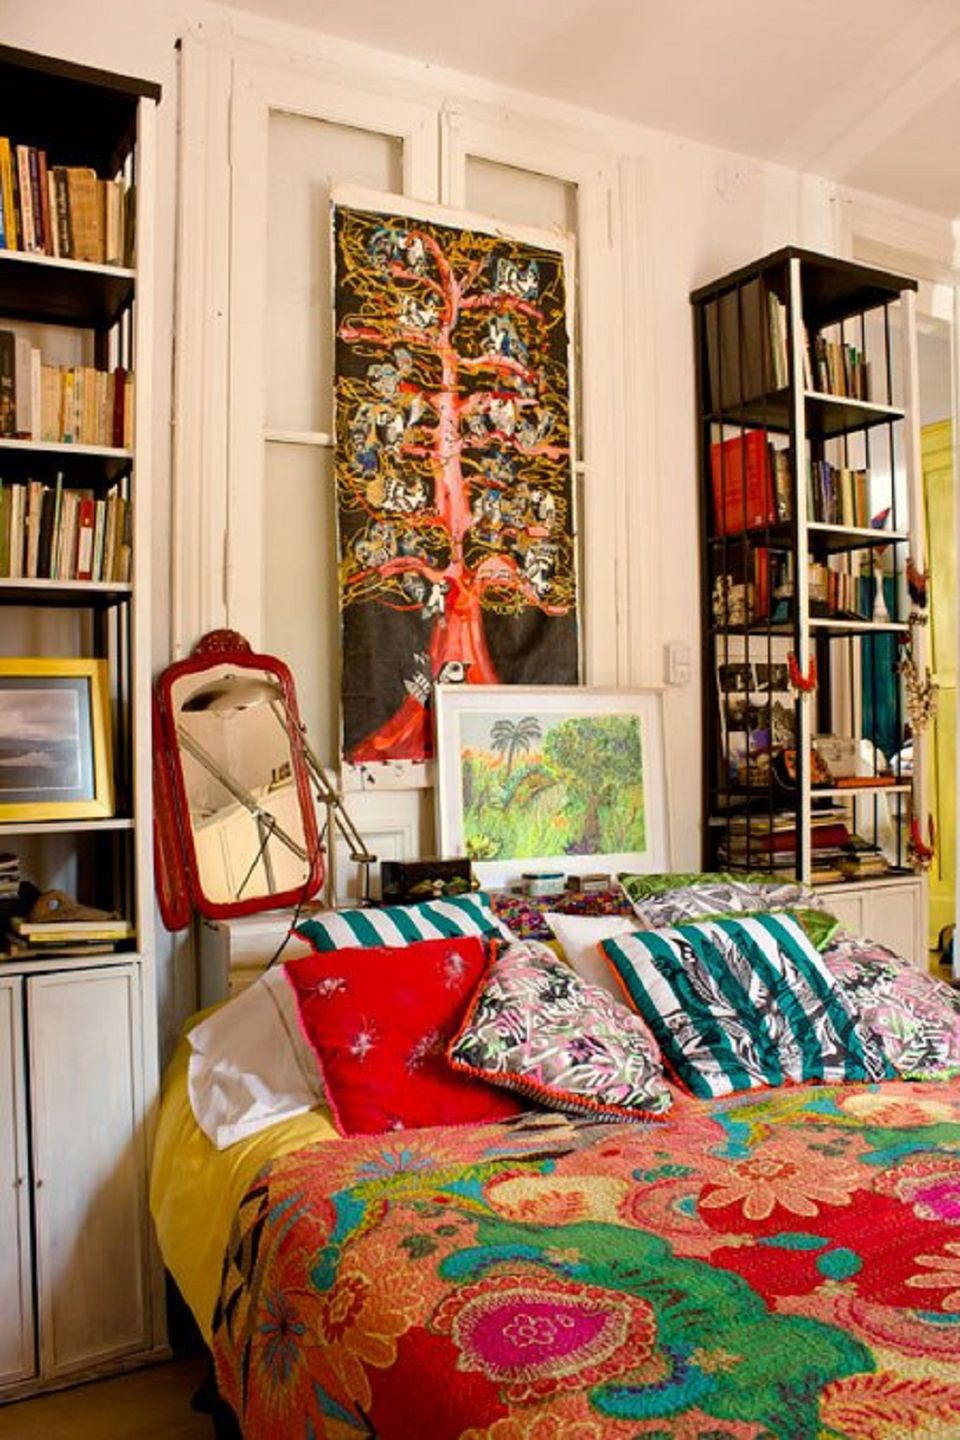 Beautiful boho bedroom decorating ideas and photos - How to decorate a bohemian bedroom ...